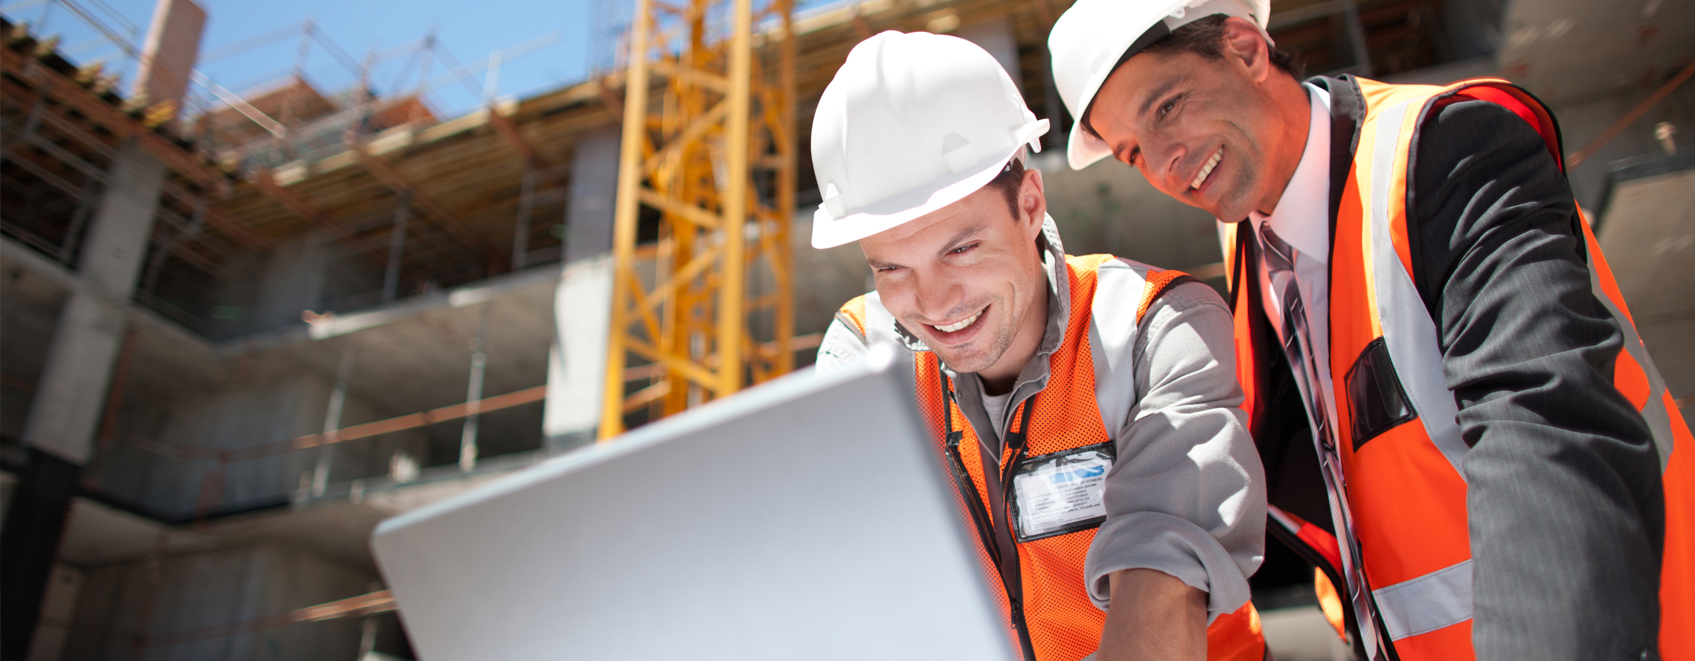 Construction team at work site smiling while looking at laptop together.